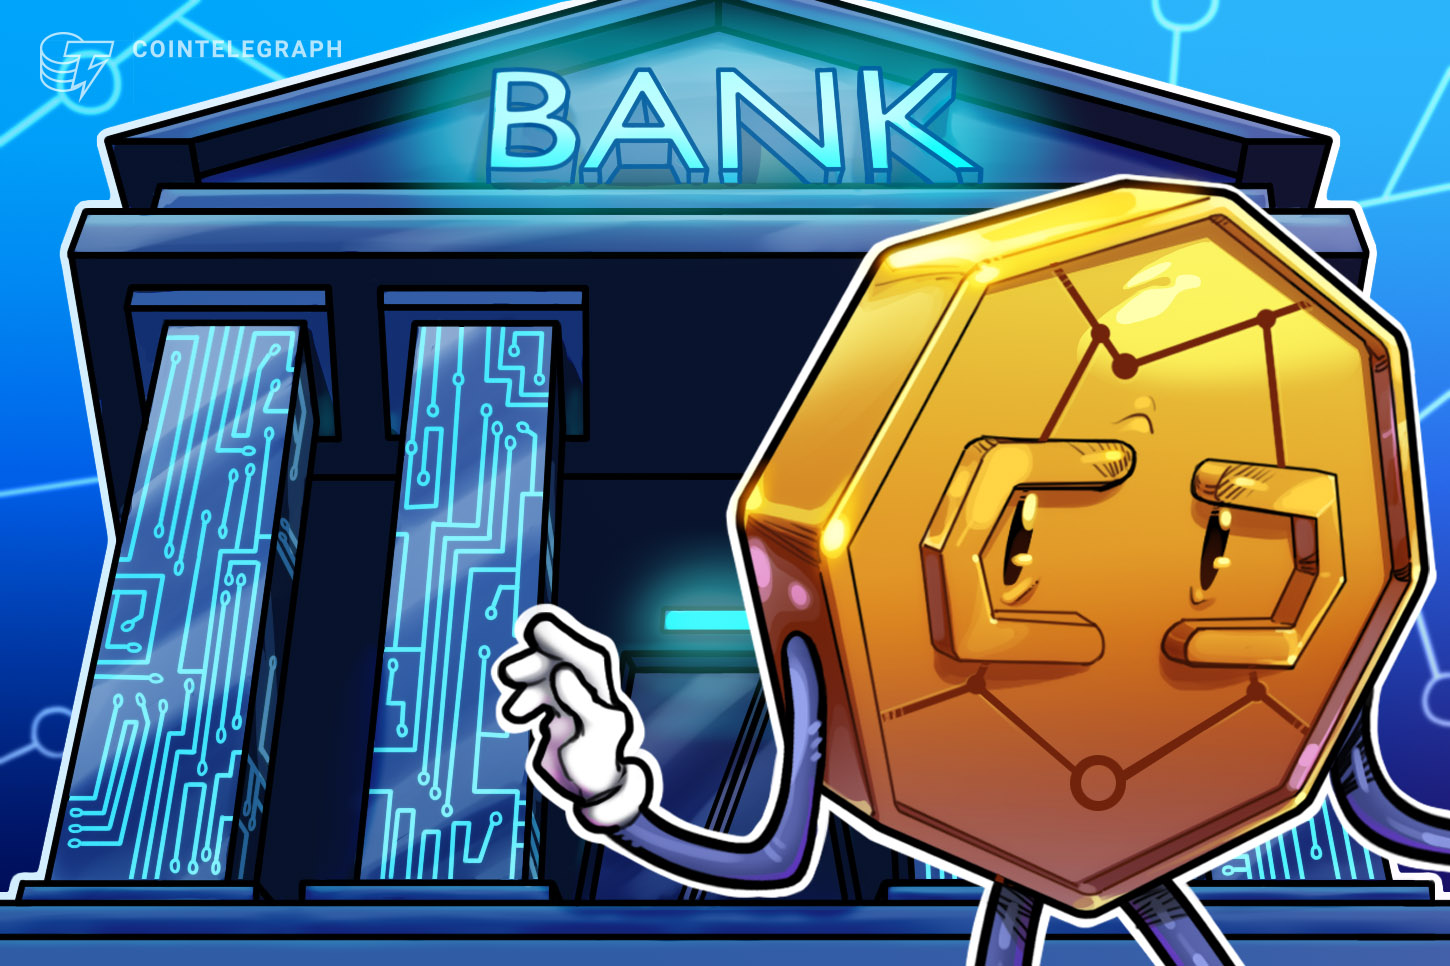 Banks fall in line as China's central bank cracks down on crypto accounts